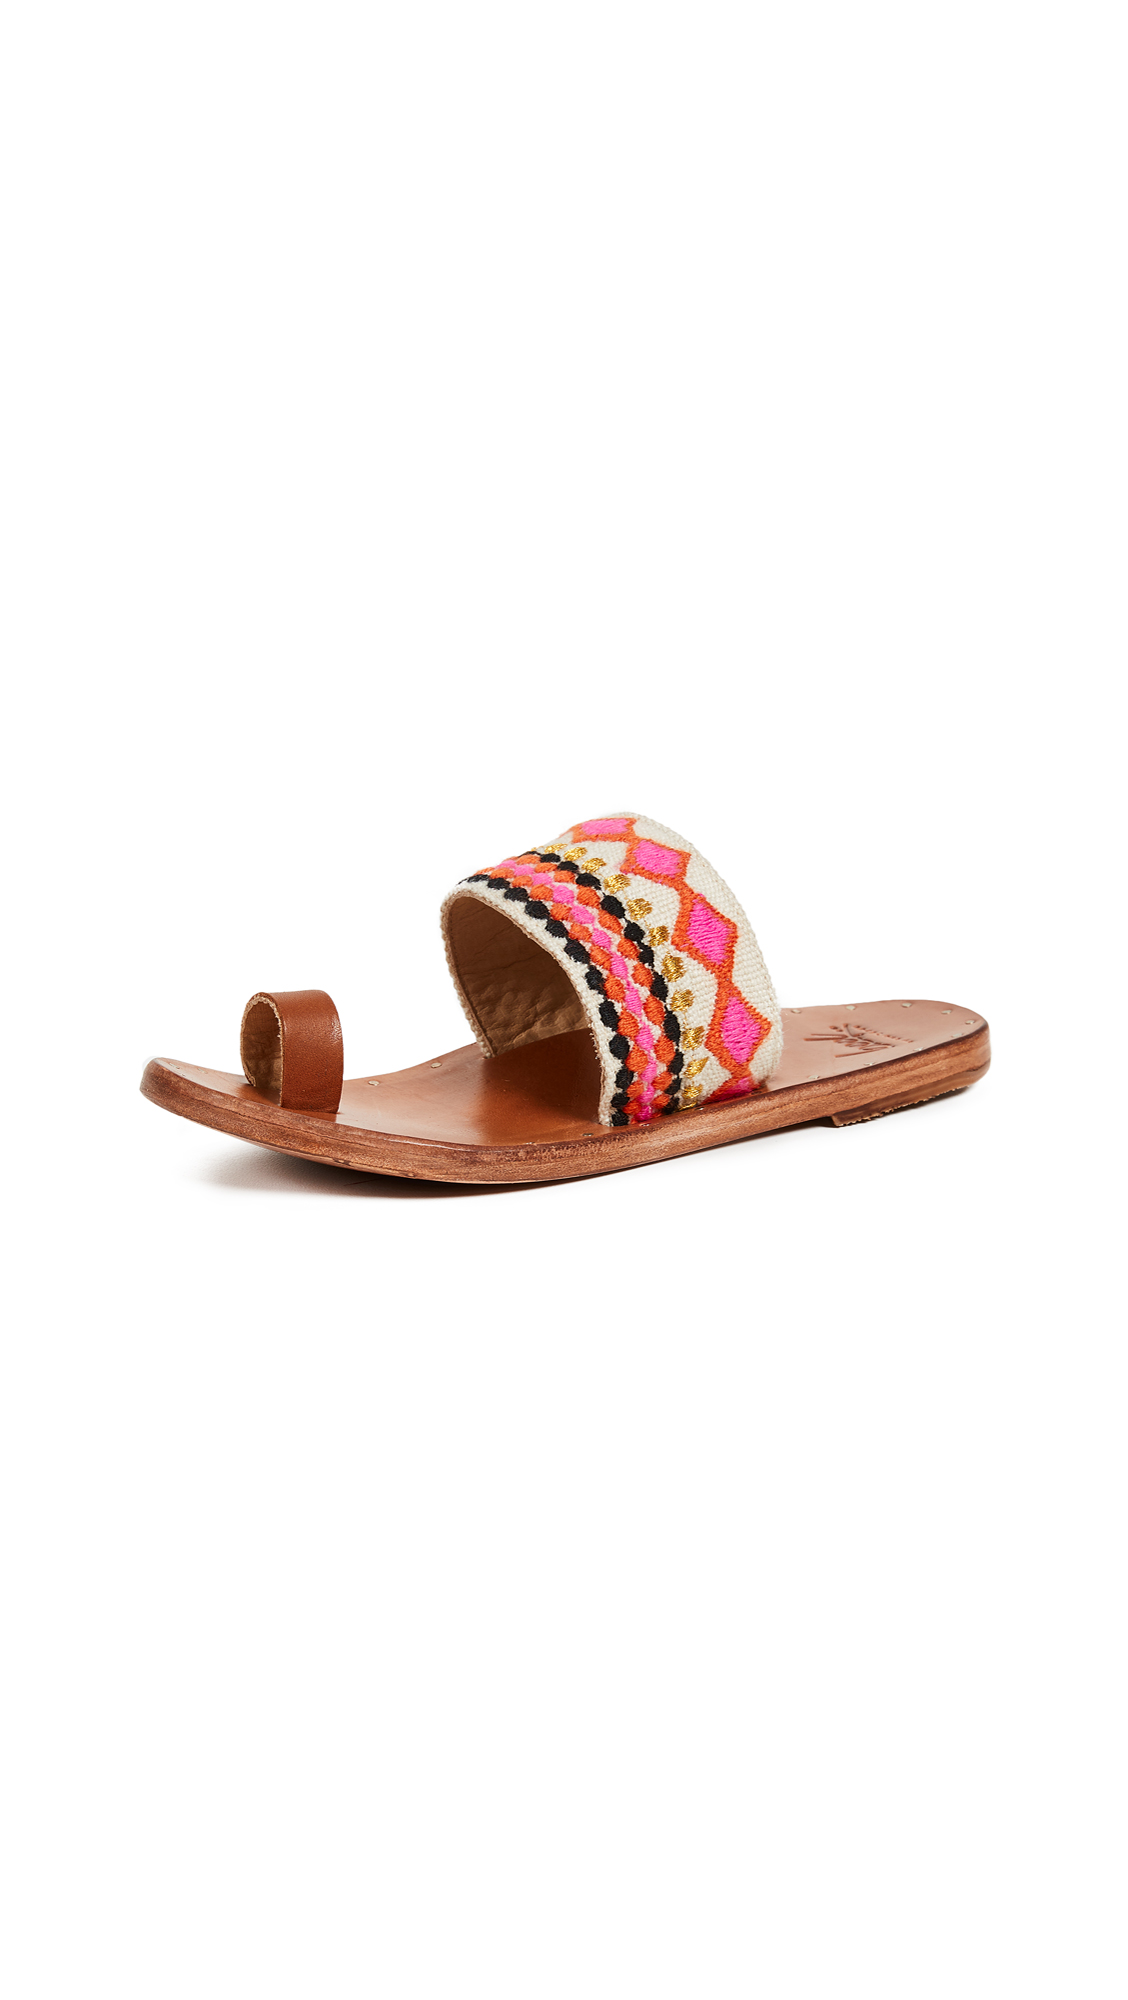 beek Dove Toe Ring Slides - Fuchsia Multi/Tan